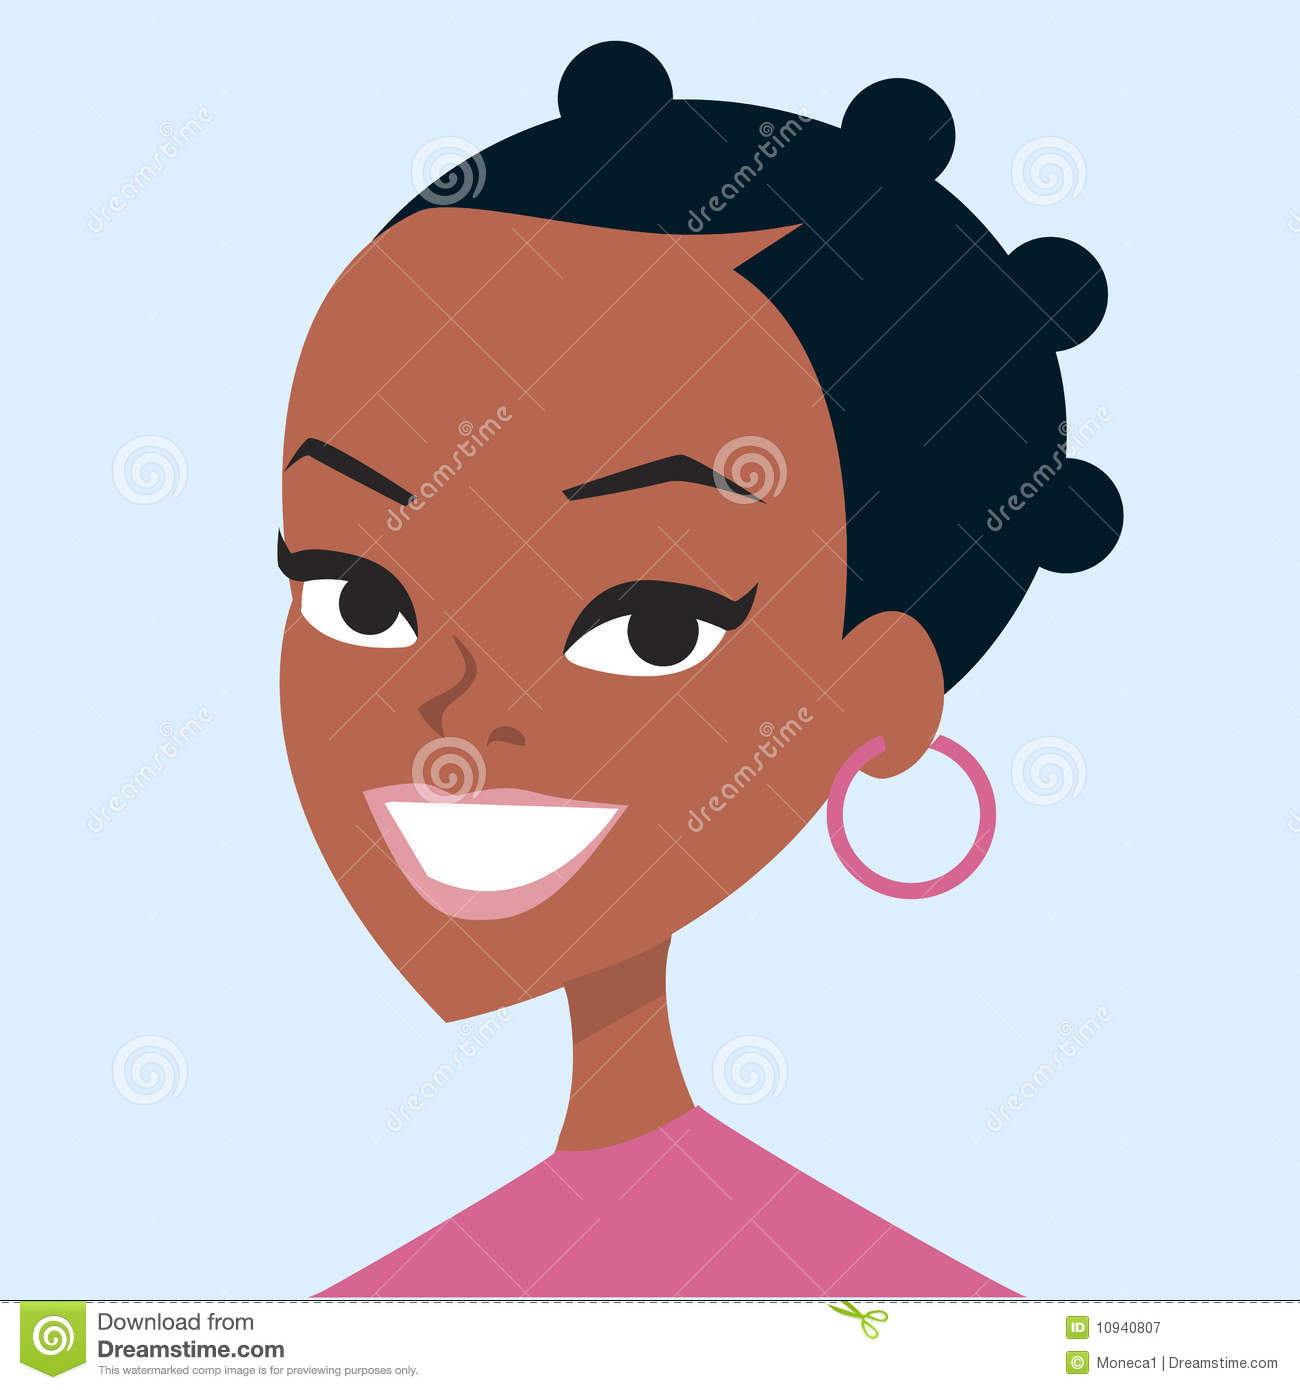 woman cartoon portrait royalty free stock photography big family dinner clipart big family clipart images